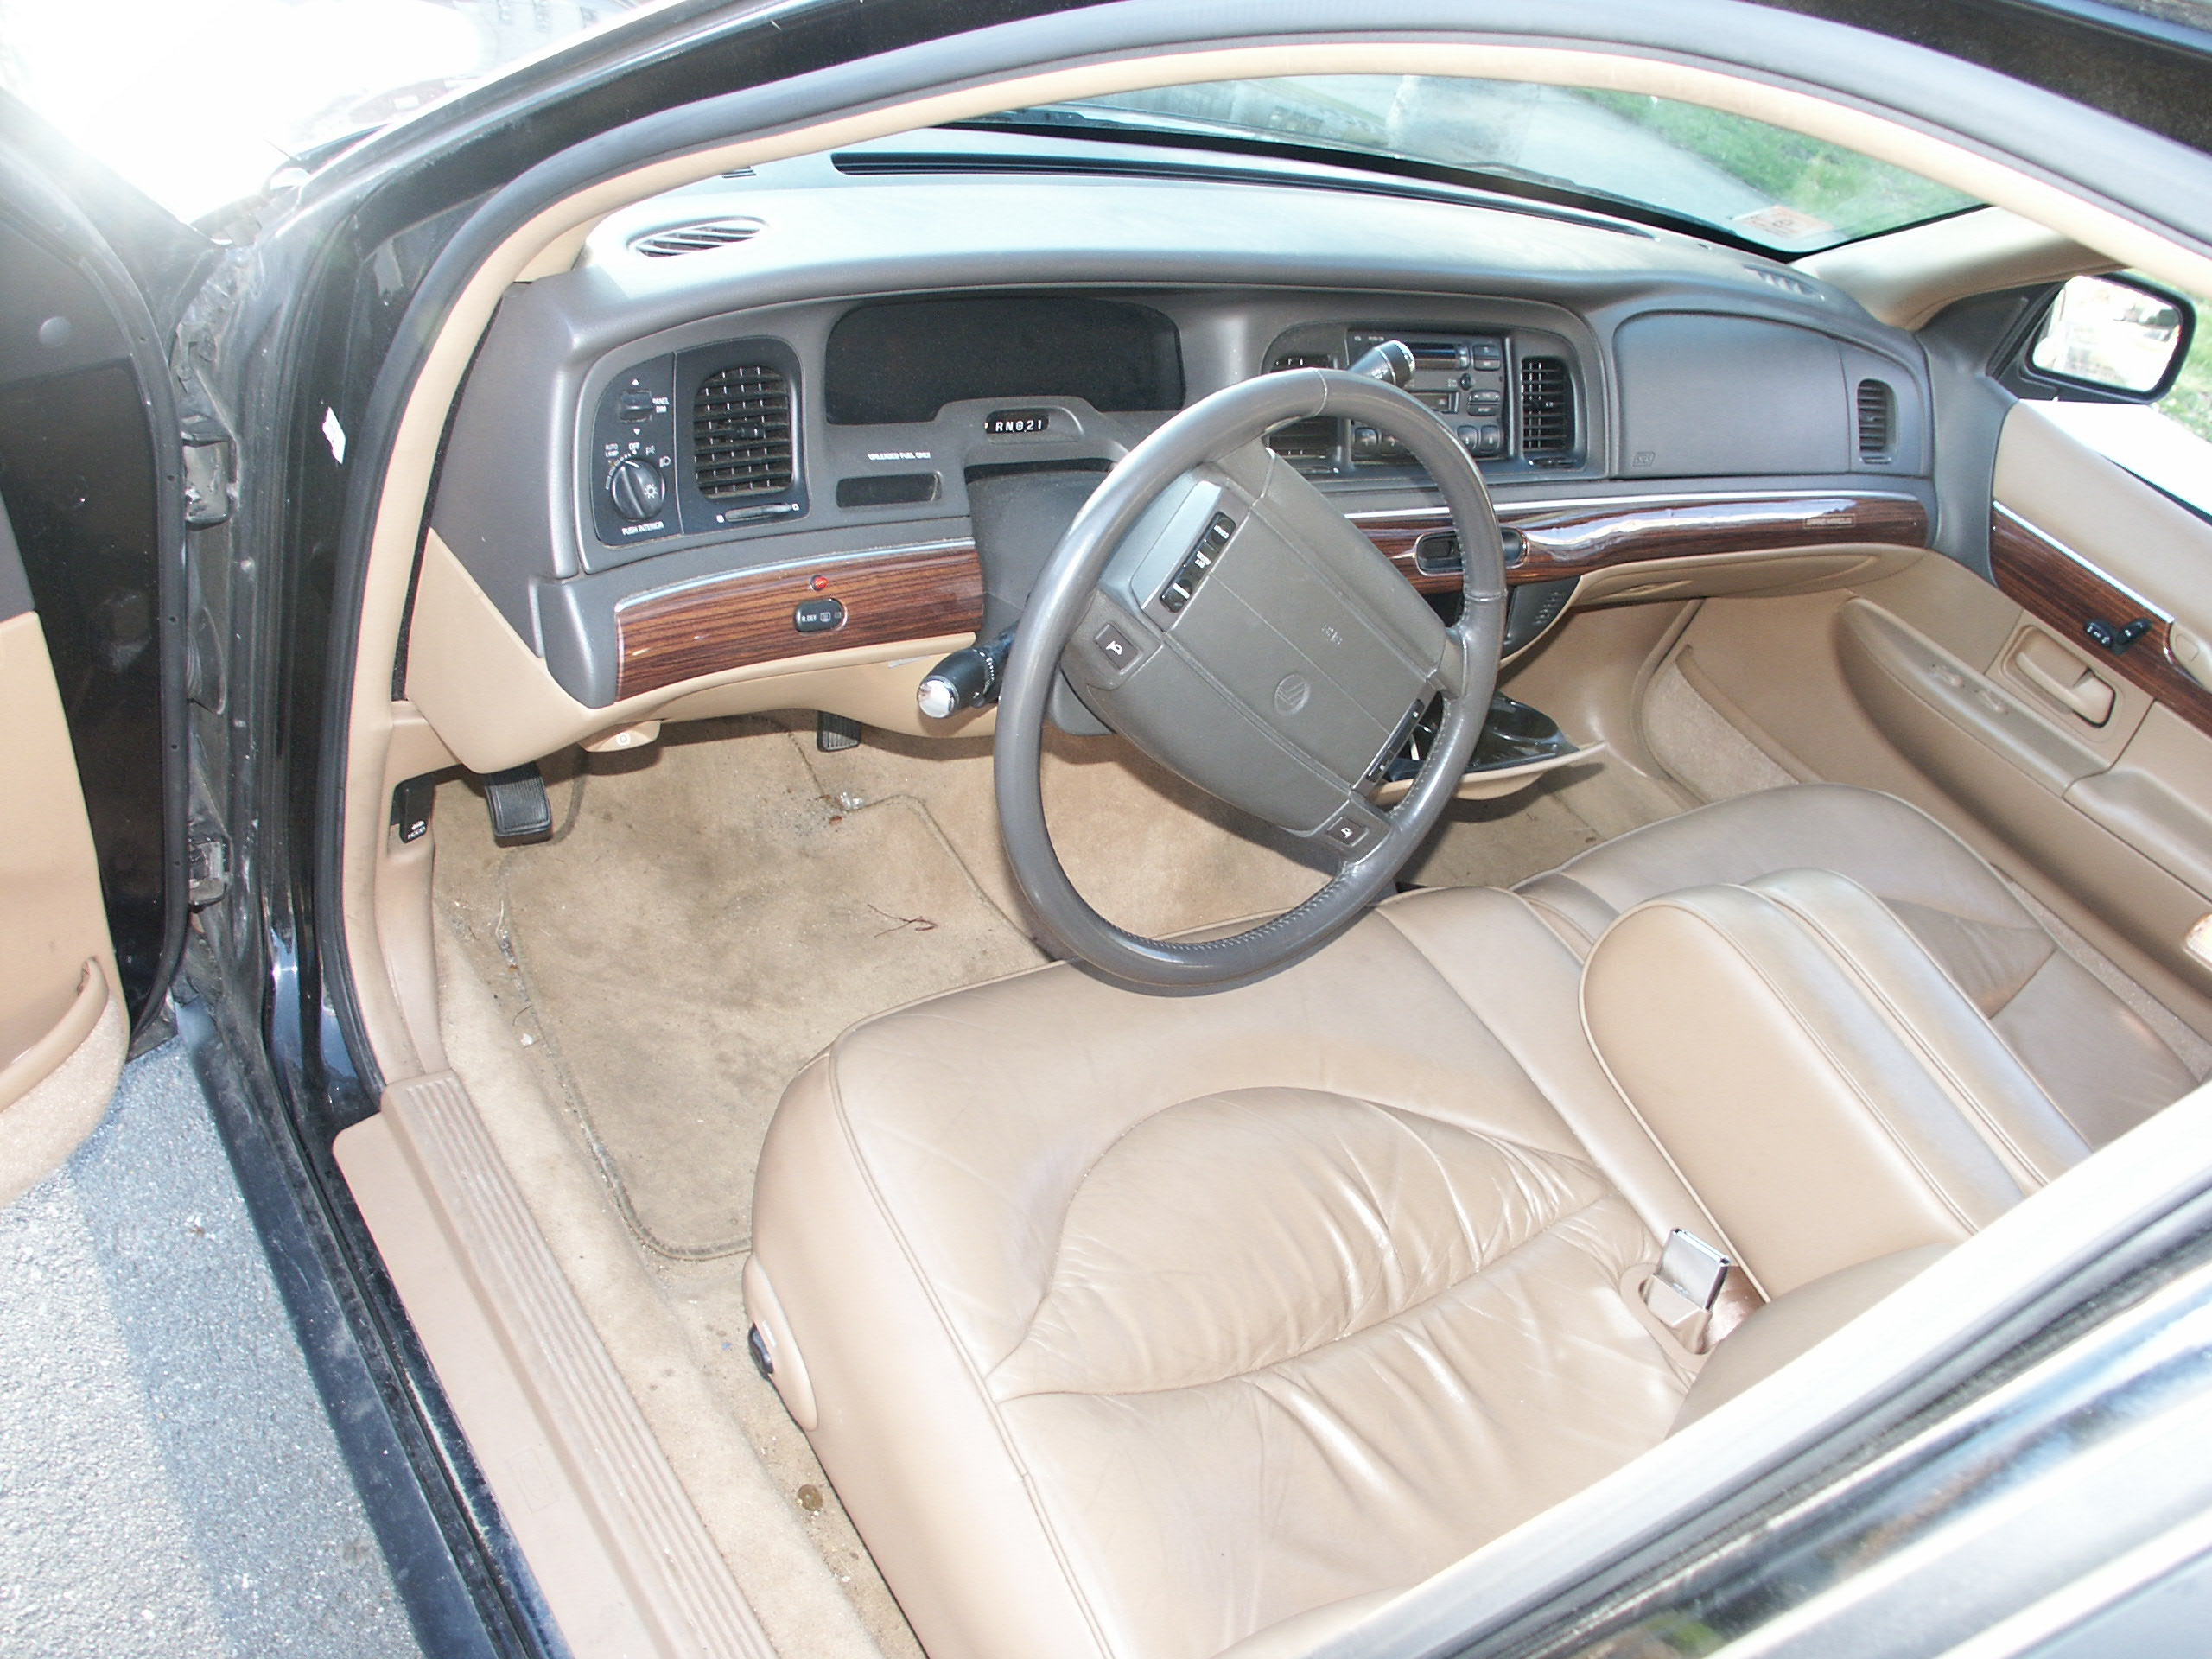 the project car is a 1995 mercury grand marquis loaded with most of the  optional equipment avaliable that model year including: -digital  speedometer cluster